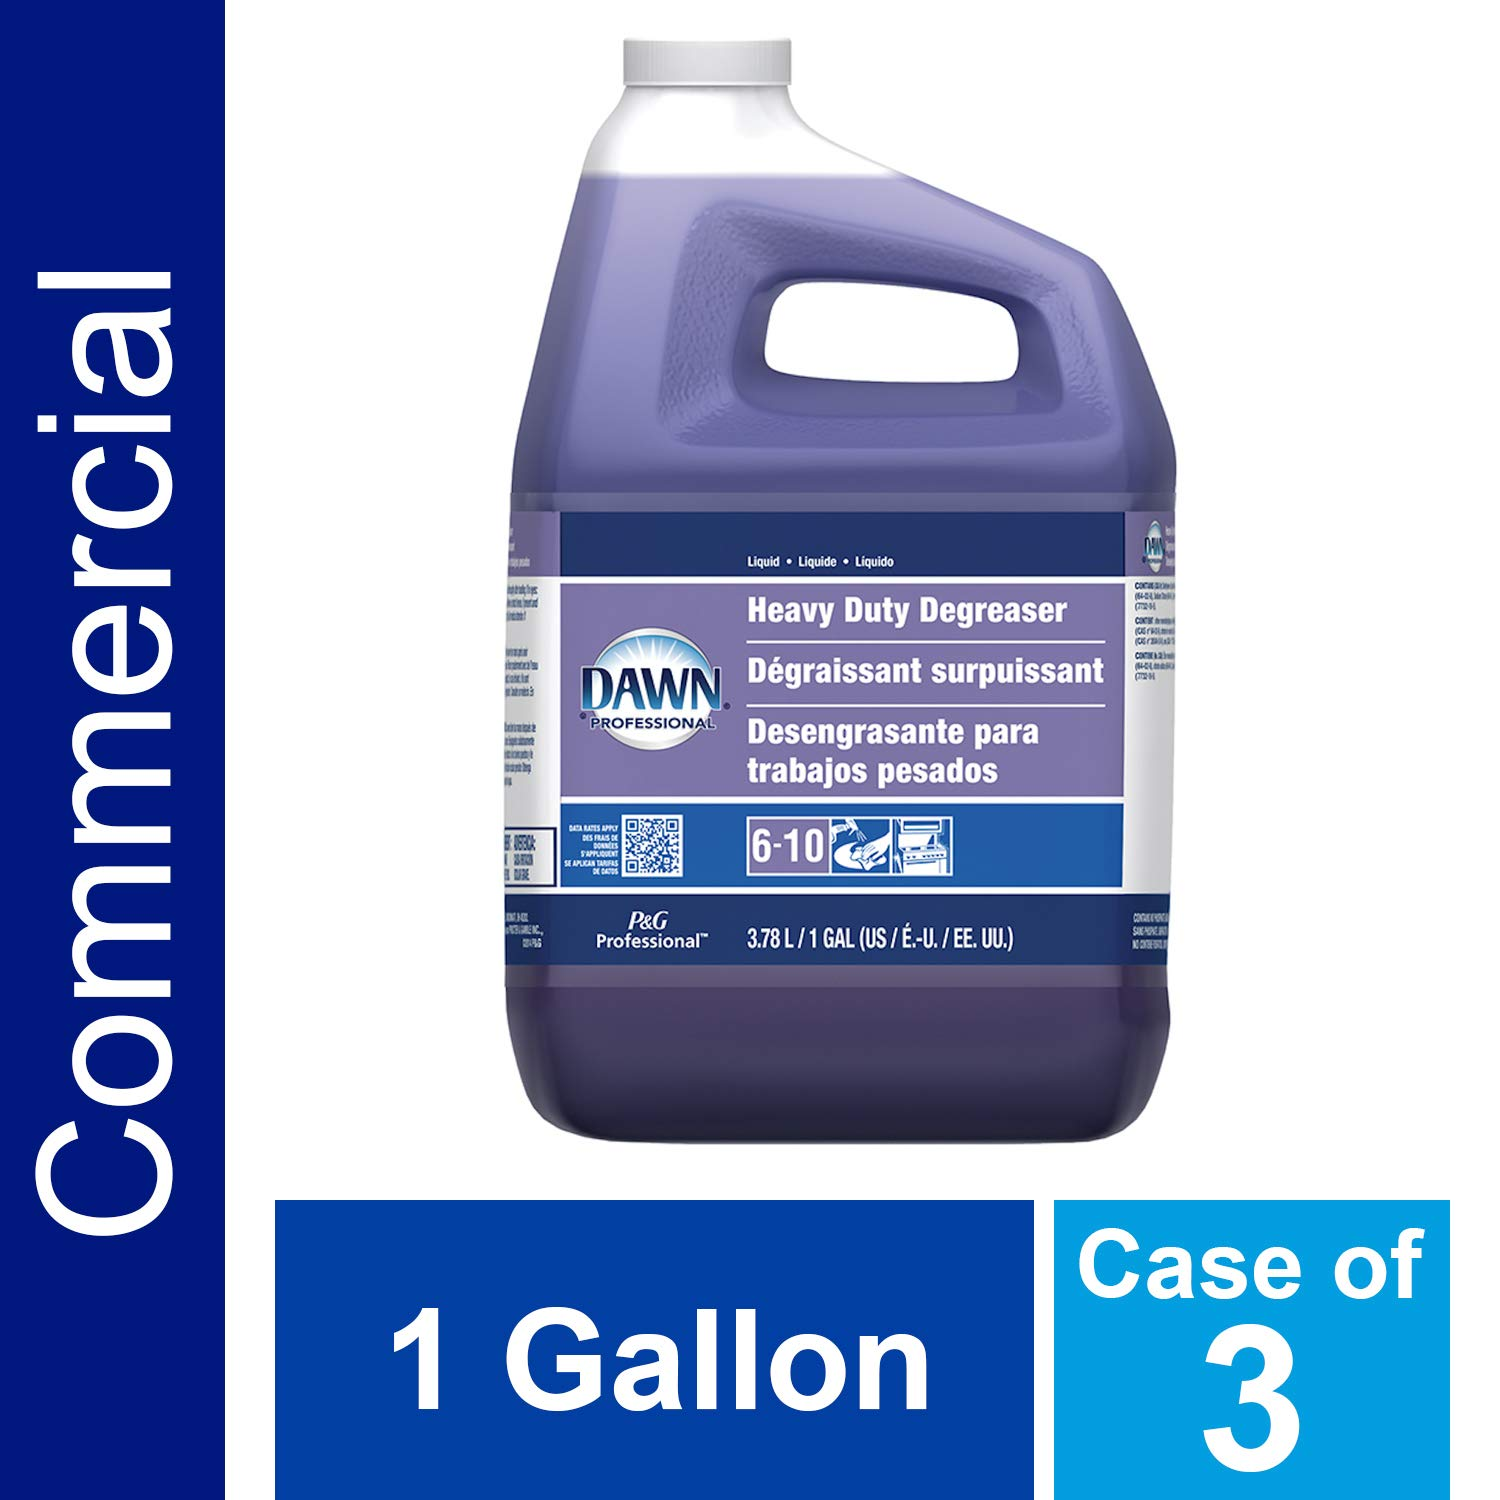 P&G Professional Heavy Duty Degreaser by Dawn Professional, Bulk Liquid Degreaser Refill for Commercial Restaurant Kitchens and Bathrooms, 1 gal. (Case of 3) - 10037000048524 by P&G Professional